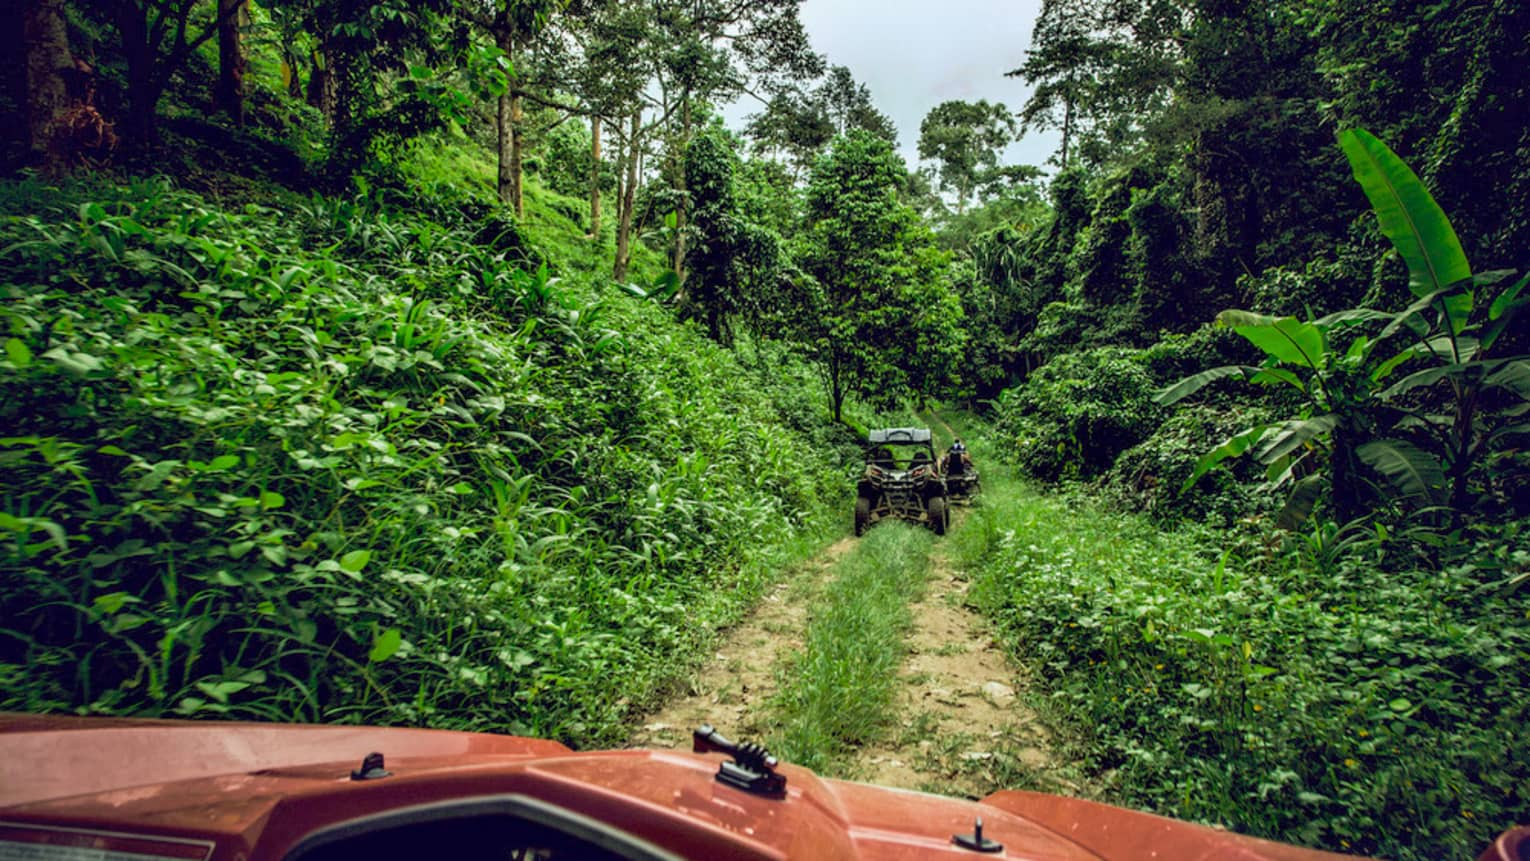 ATVs riding down dirt path in tropical forest